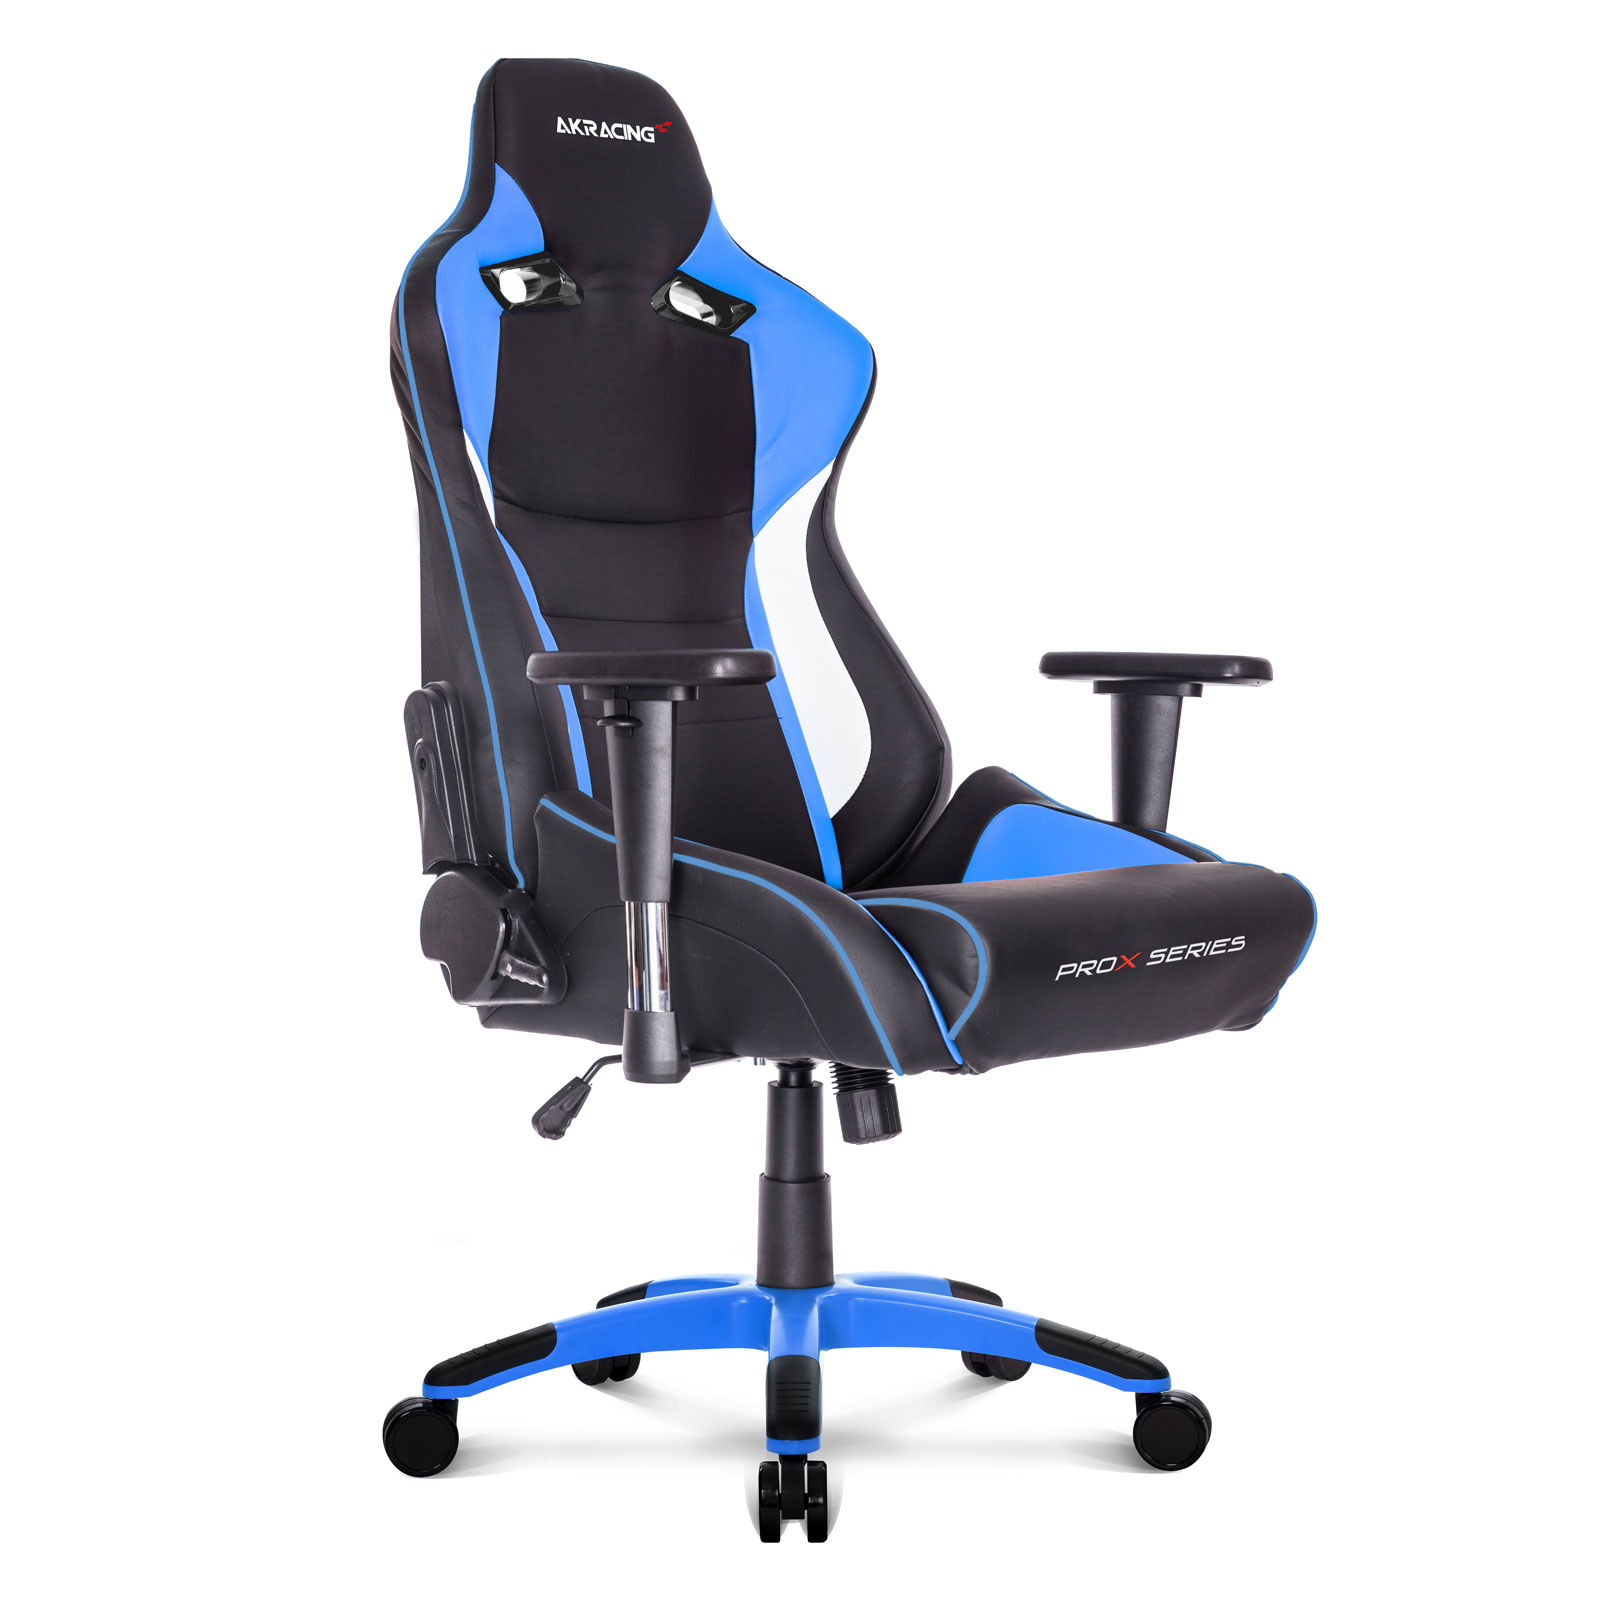 AKRacing ProX Gaming Chair bleu  Fauteuil gamer